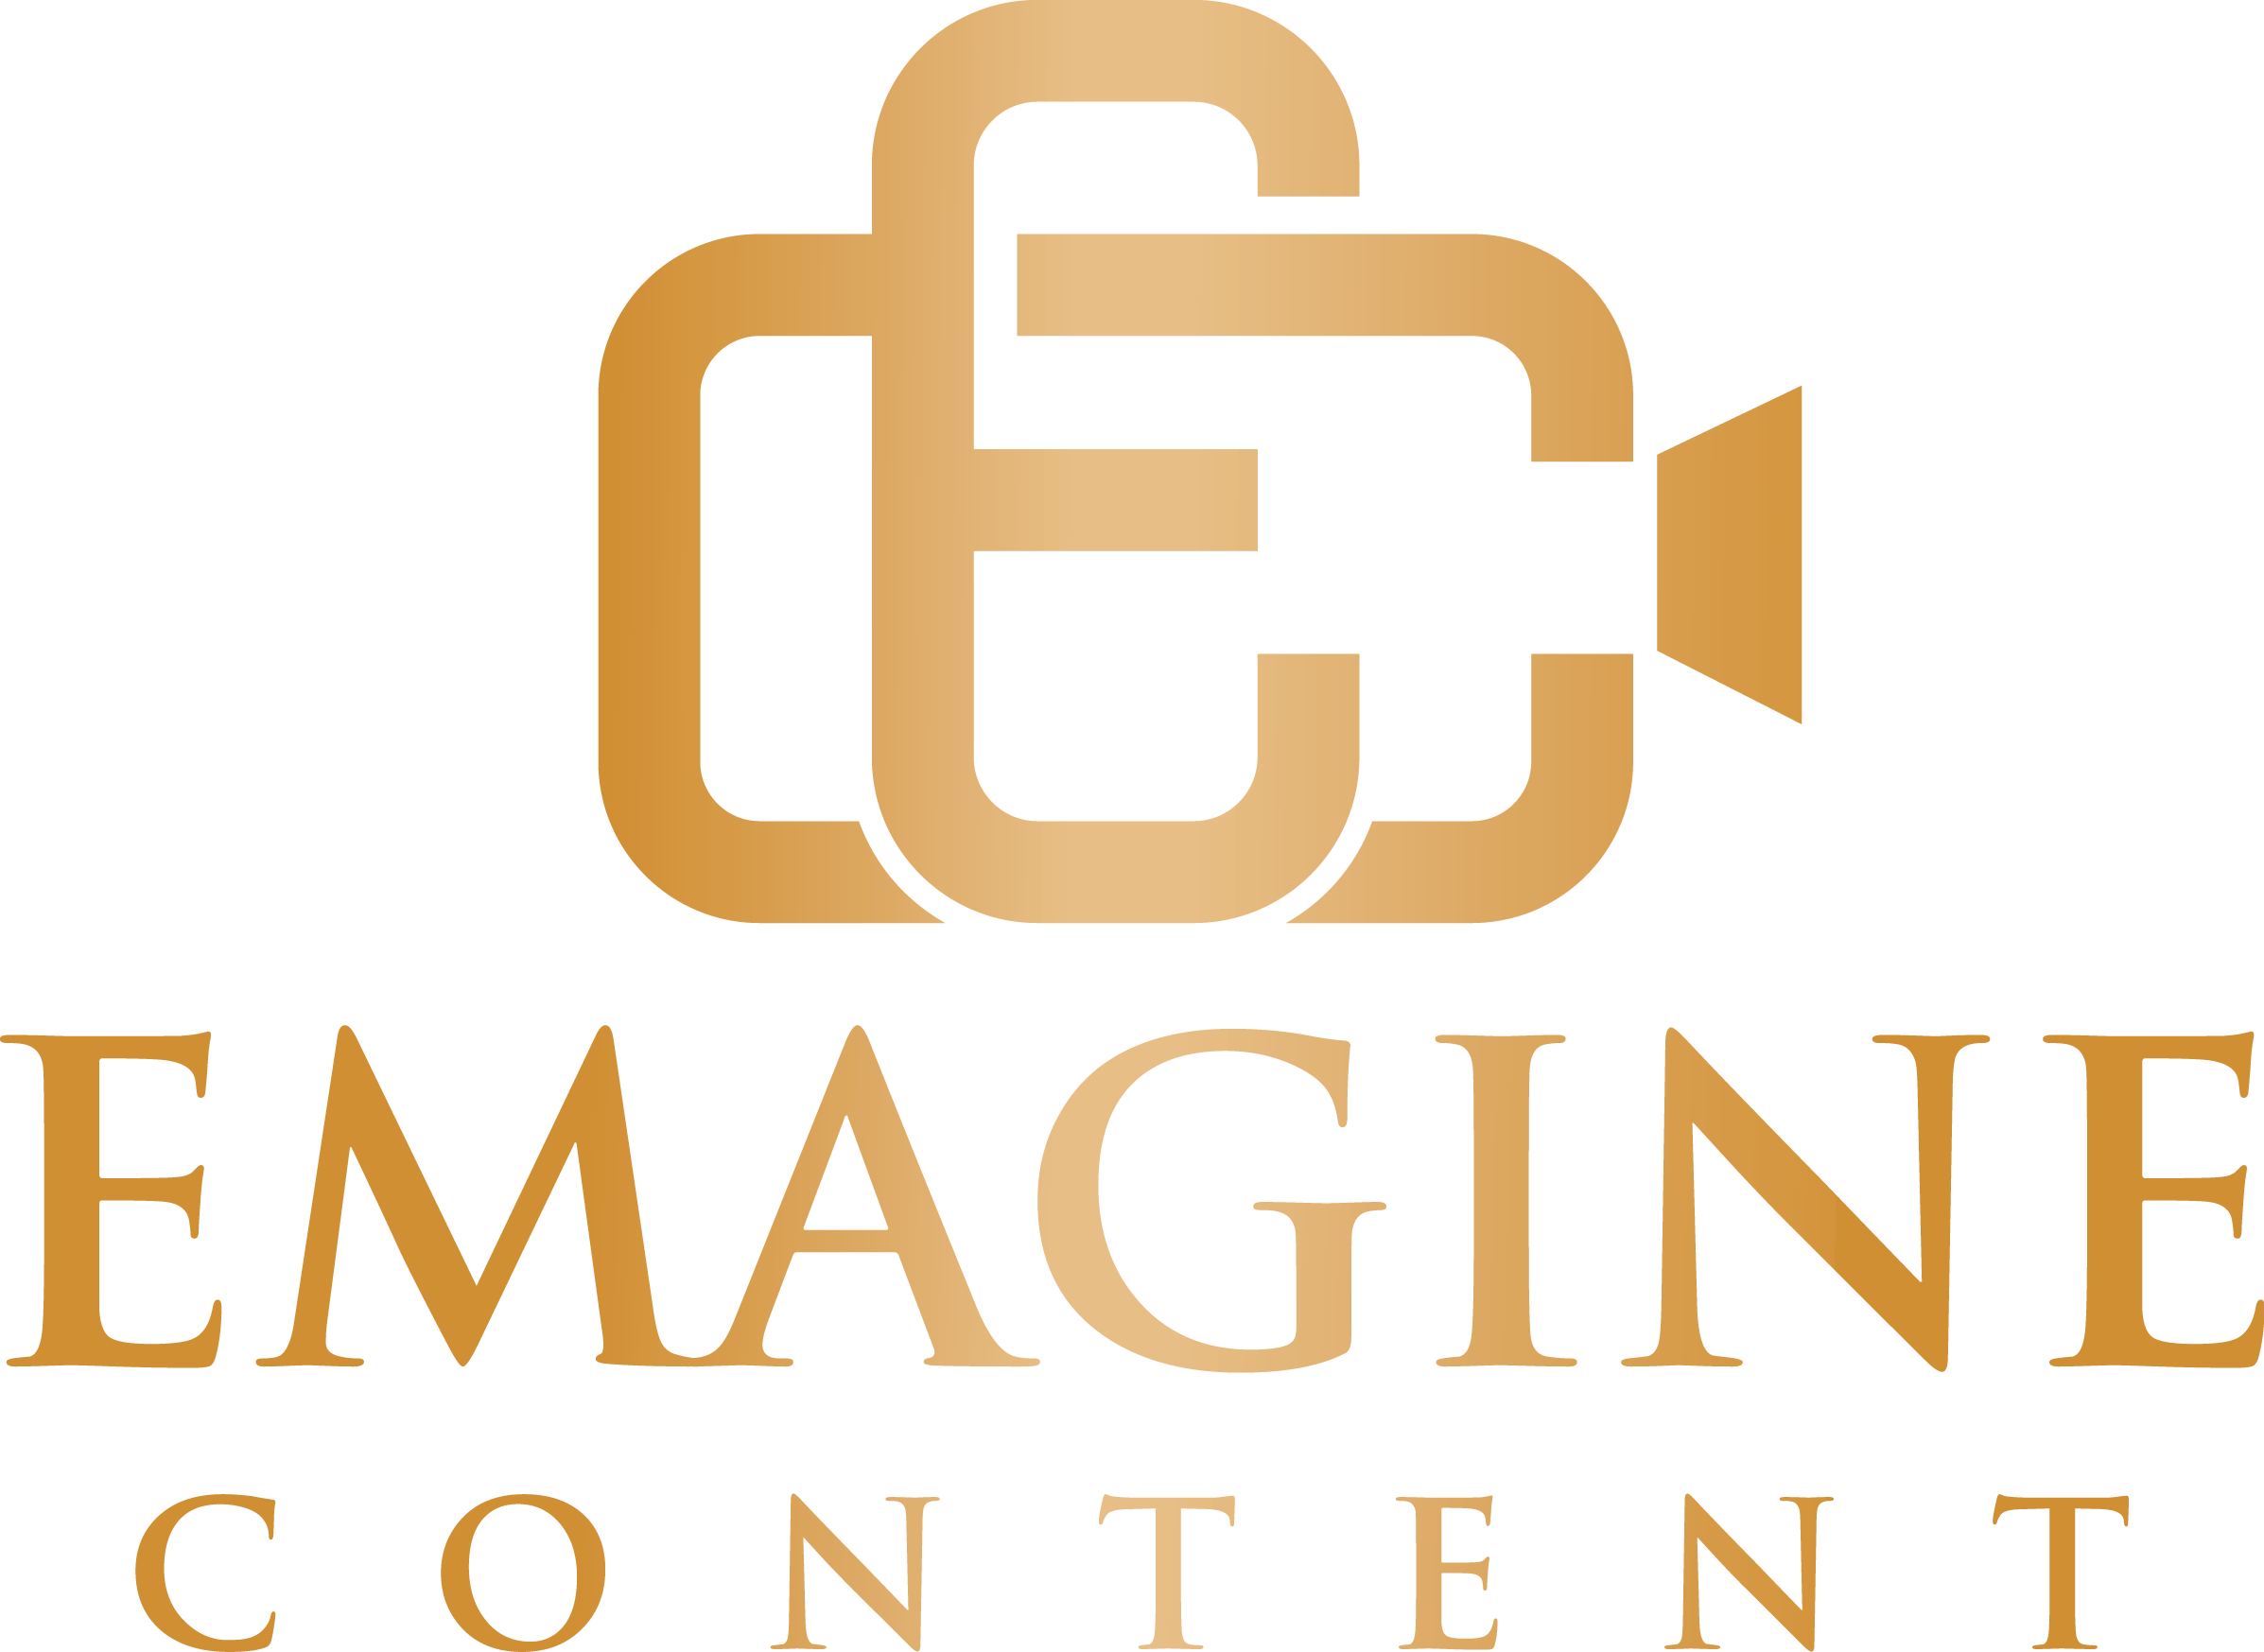 https://www.mncjobs.co.uk/company/emagine-artists-agency